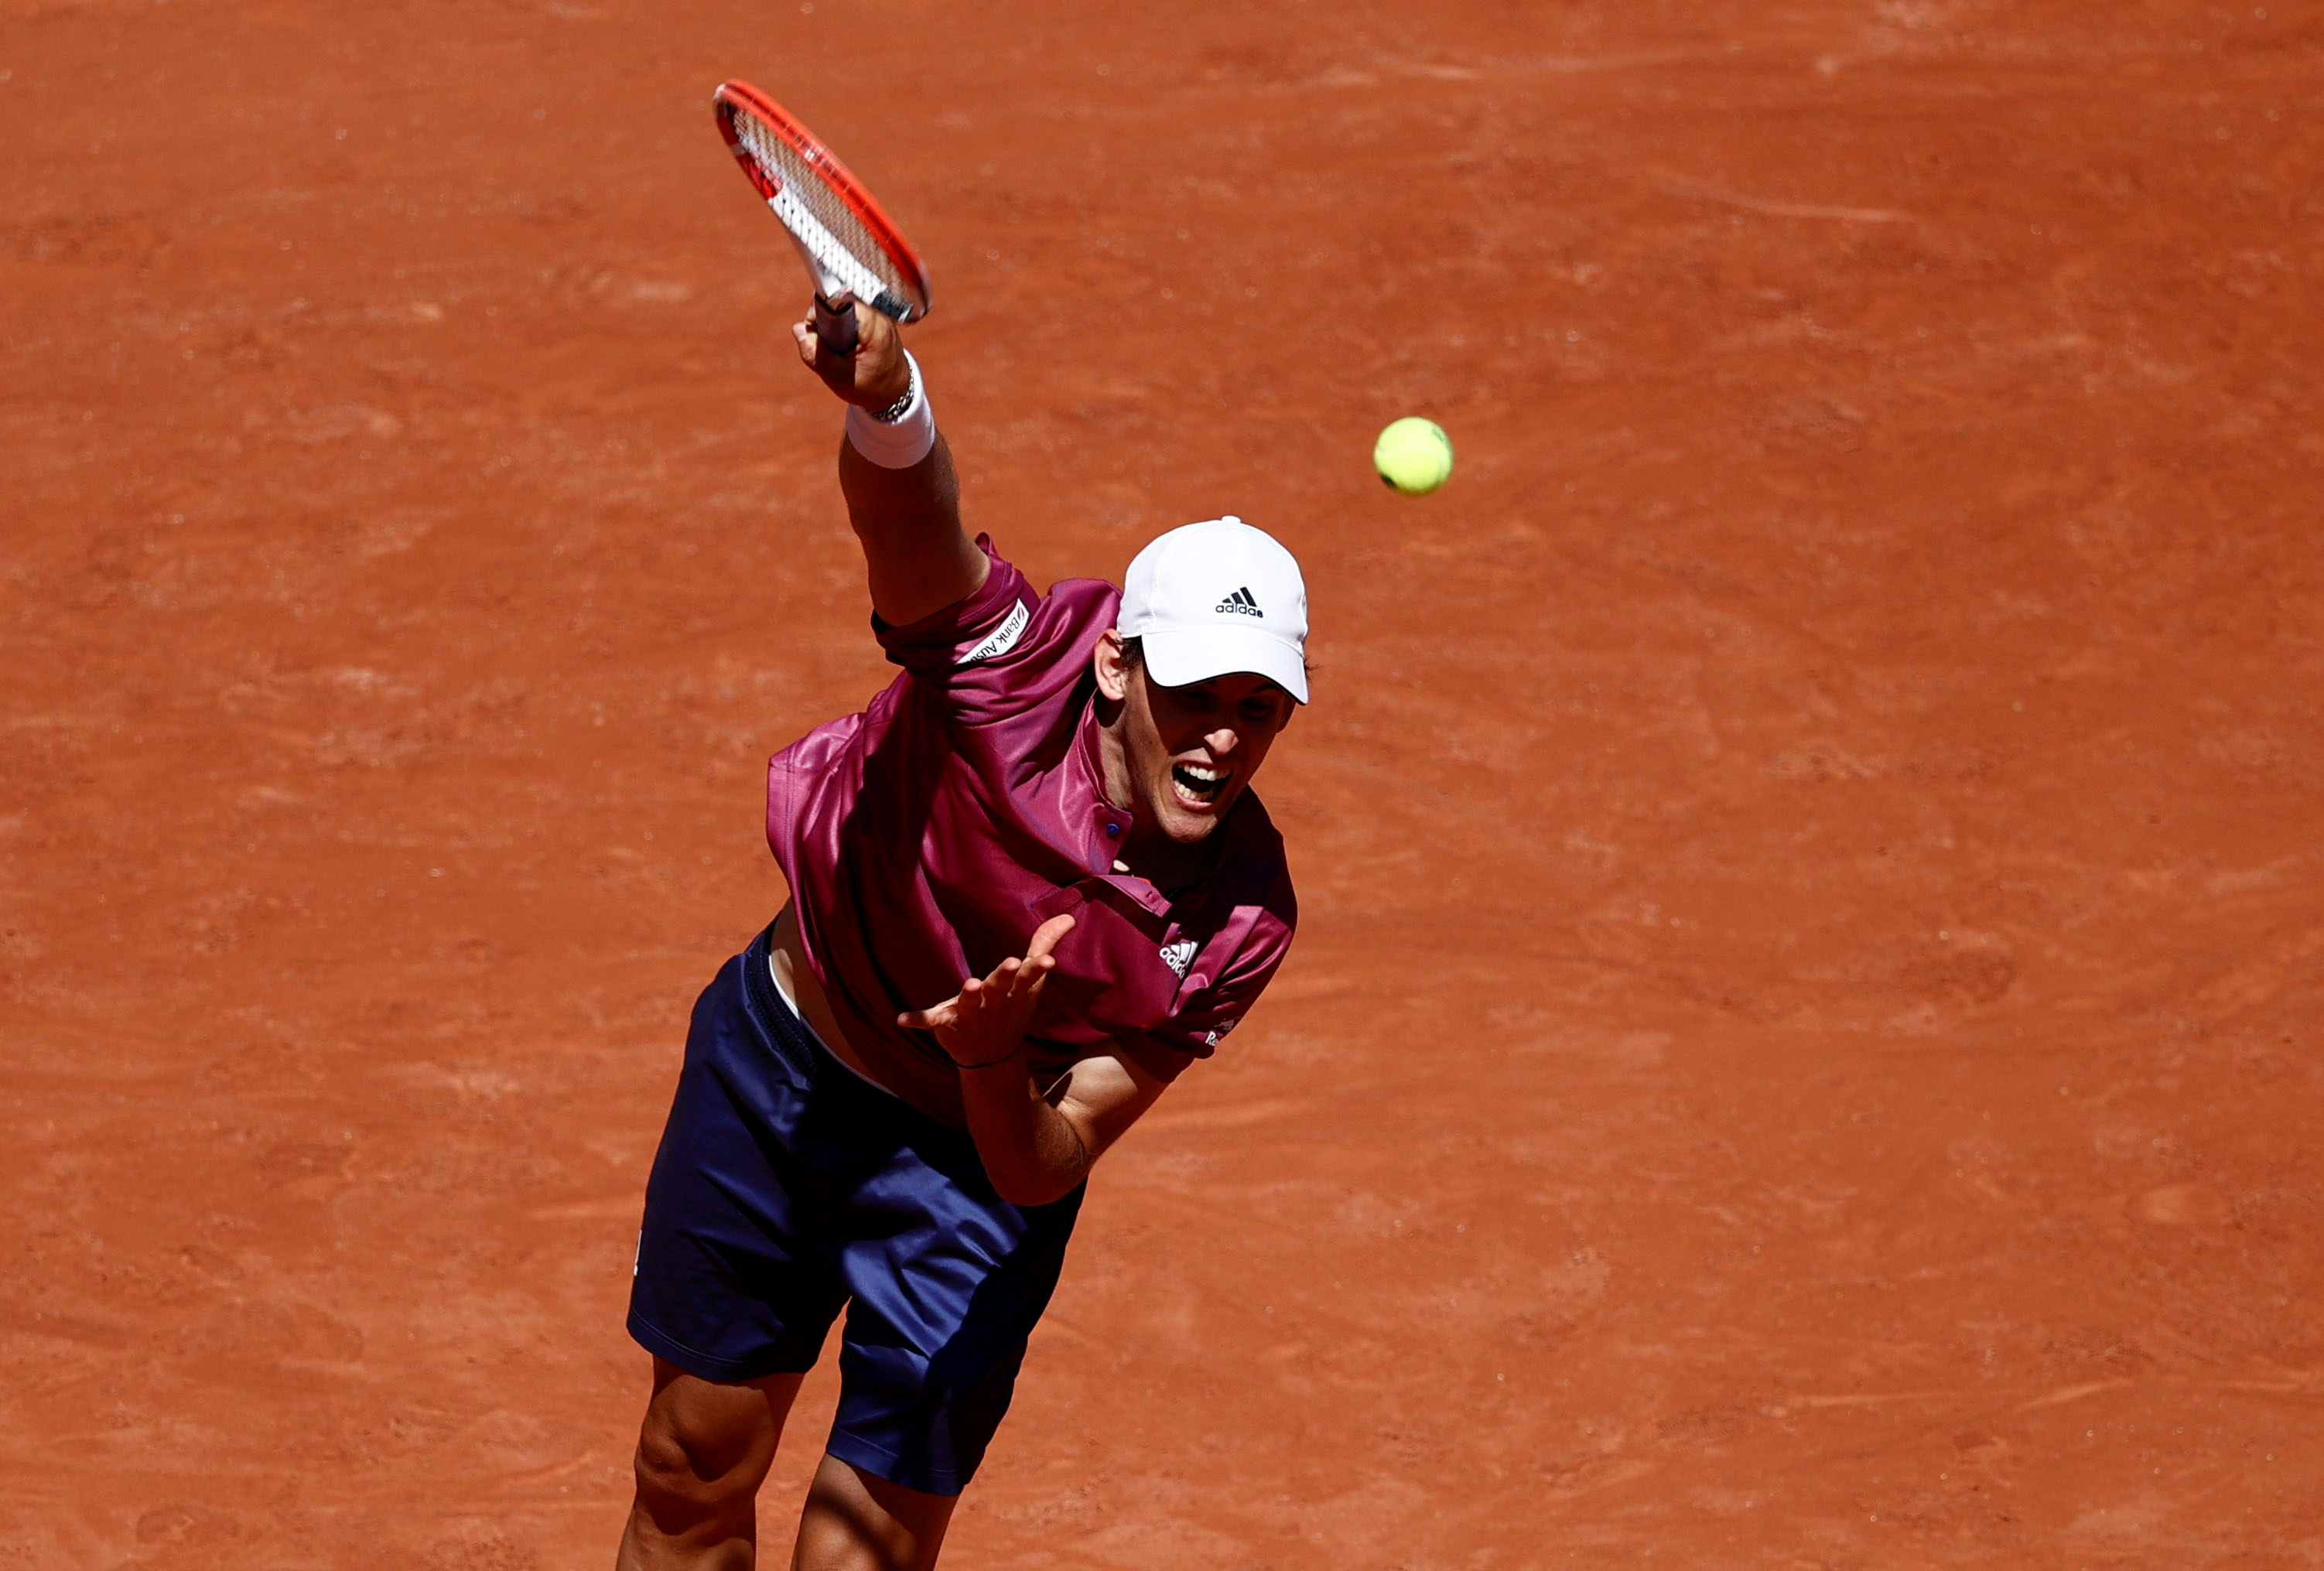 Tennis - French Open - Roland Garros, Paris, France - May 30, 2021 Austria's Dominic Thiem reacts in action during his first round match against Spain's Pablo Andujar REUTERS/Christian Hartmann